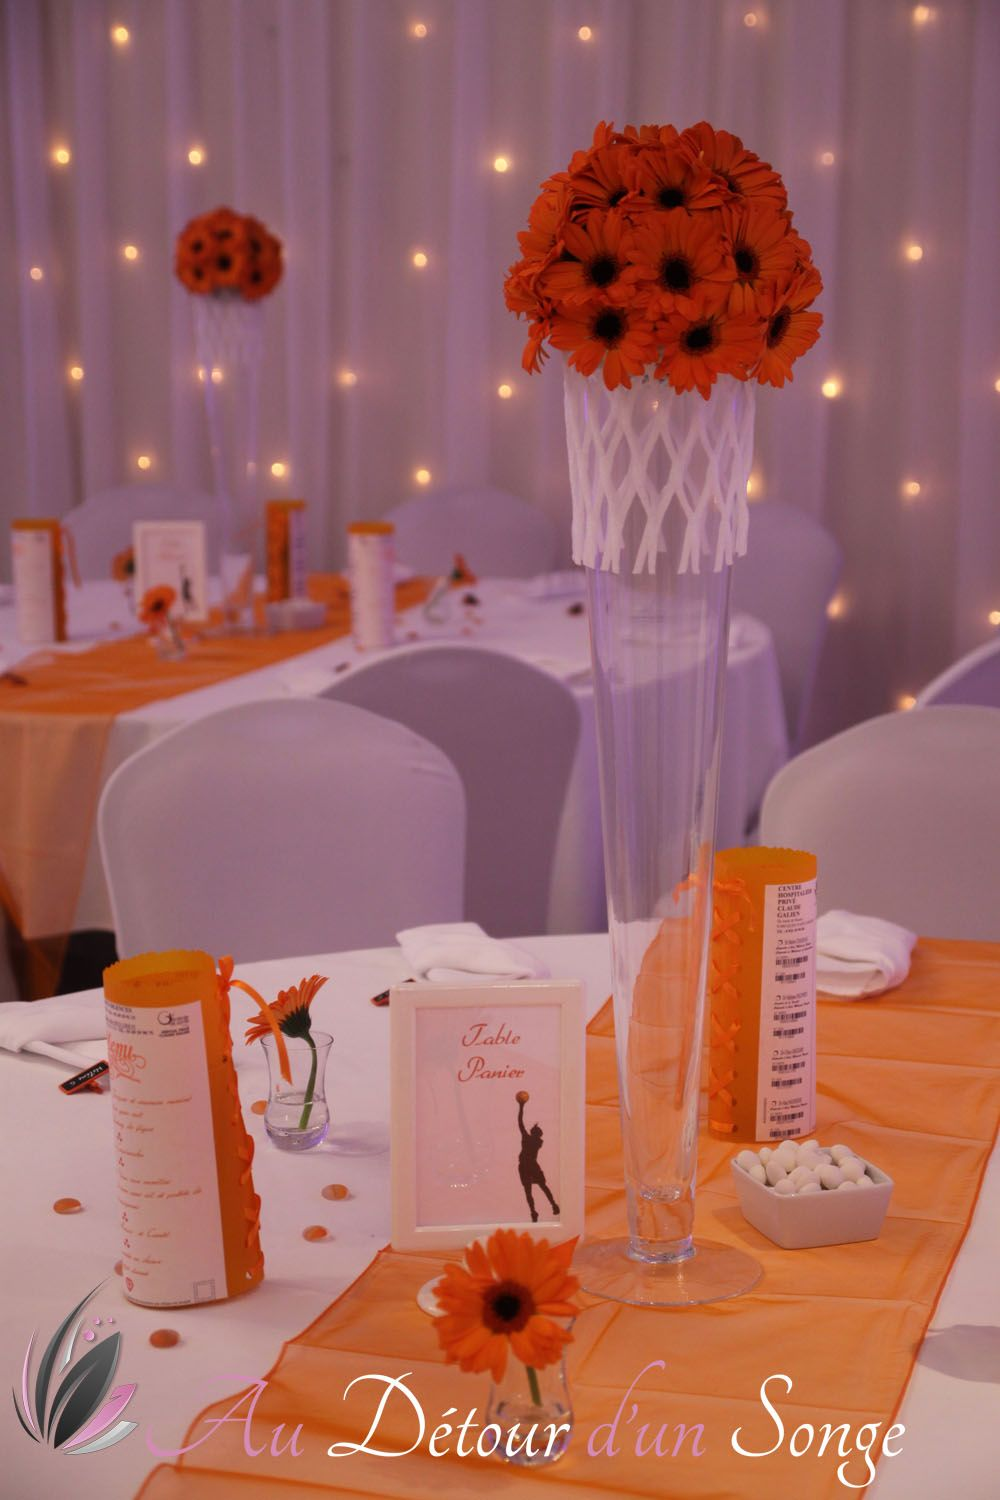 D Coration De Mariage Th Me Basket Ball Orange Blanc Wedding Decoration Theme Basket Ball